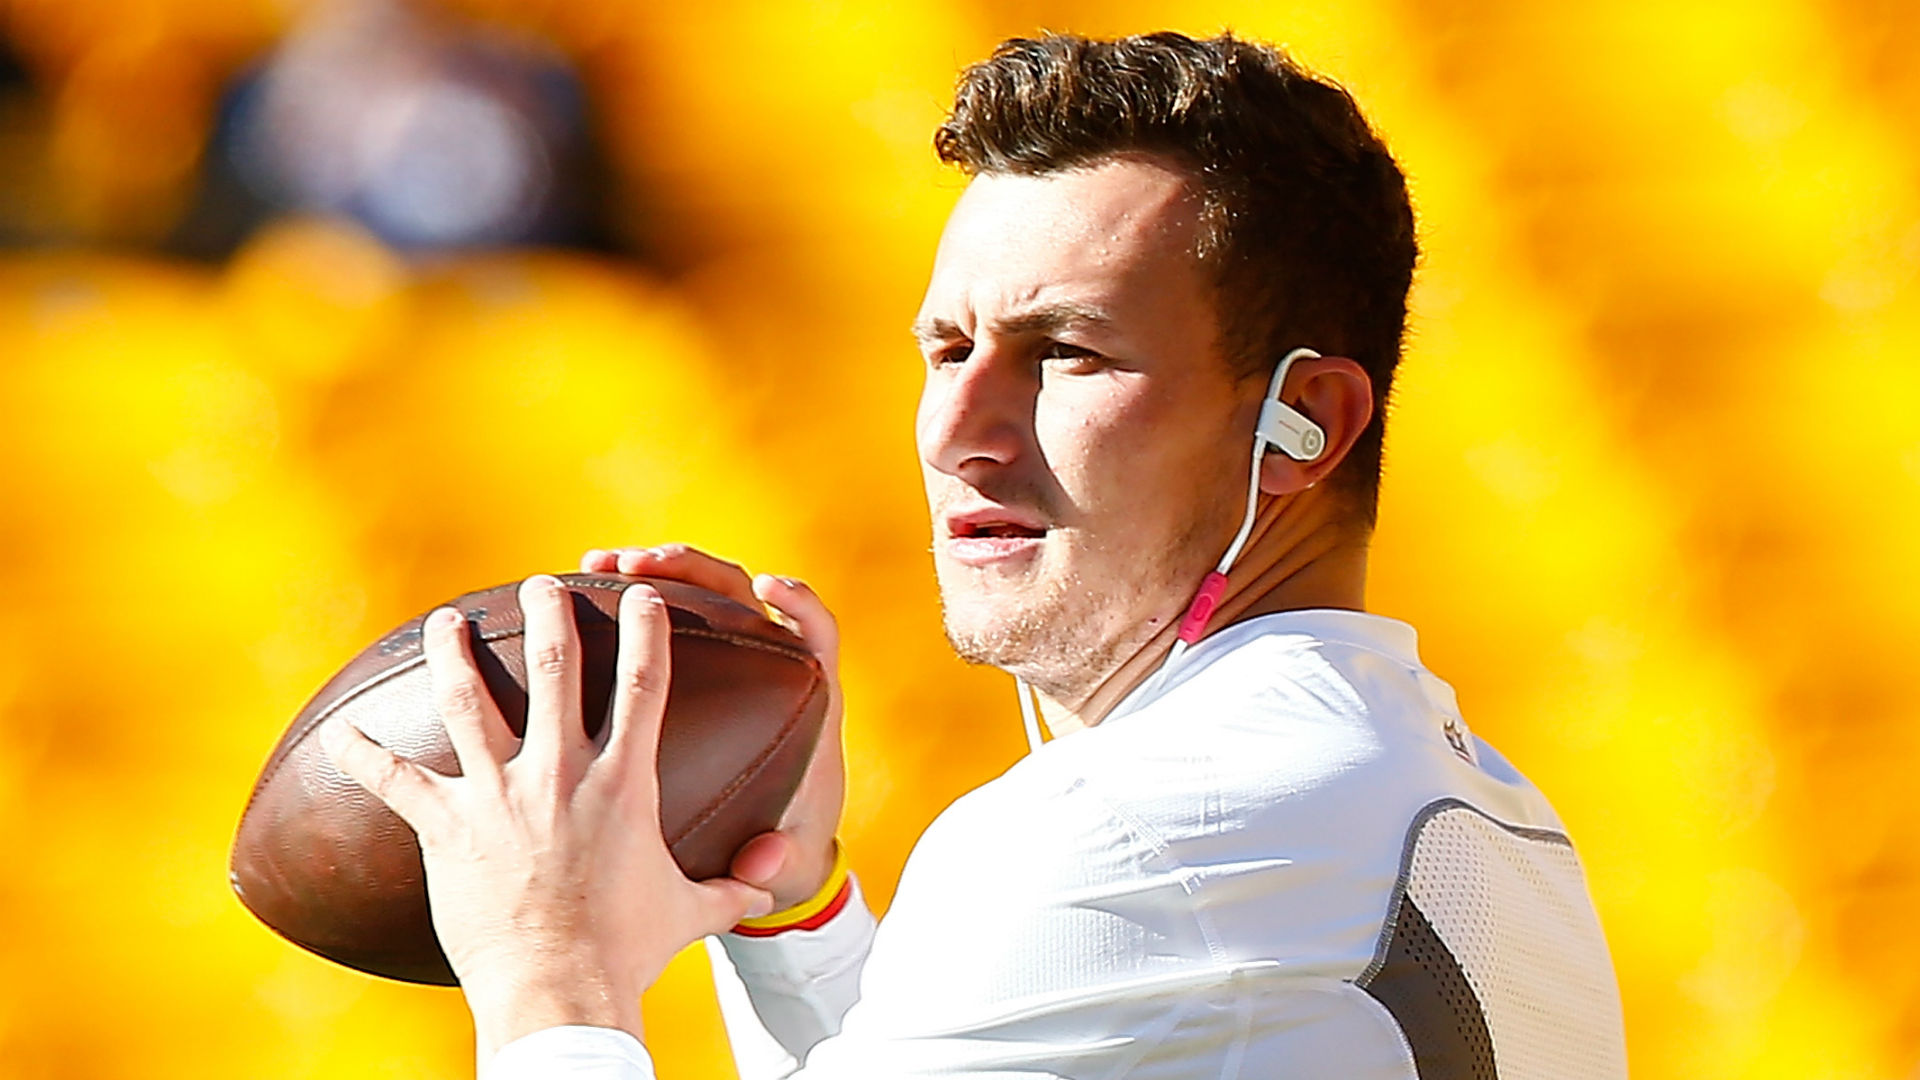 Johnny Manziel vows he's changed as he discusses AAF shot